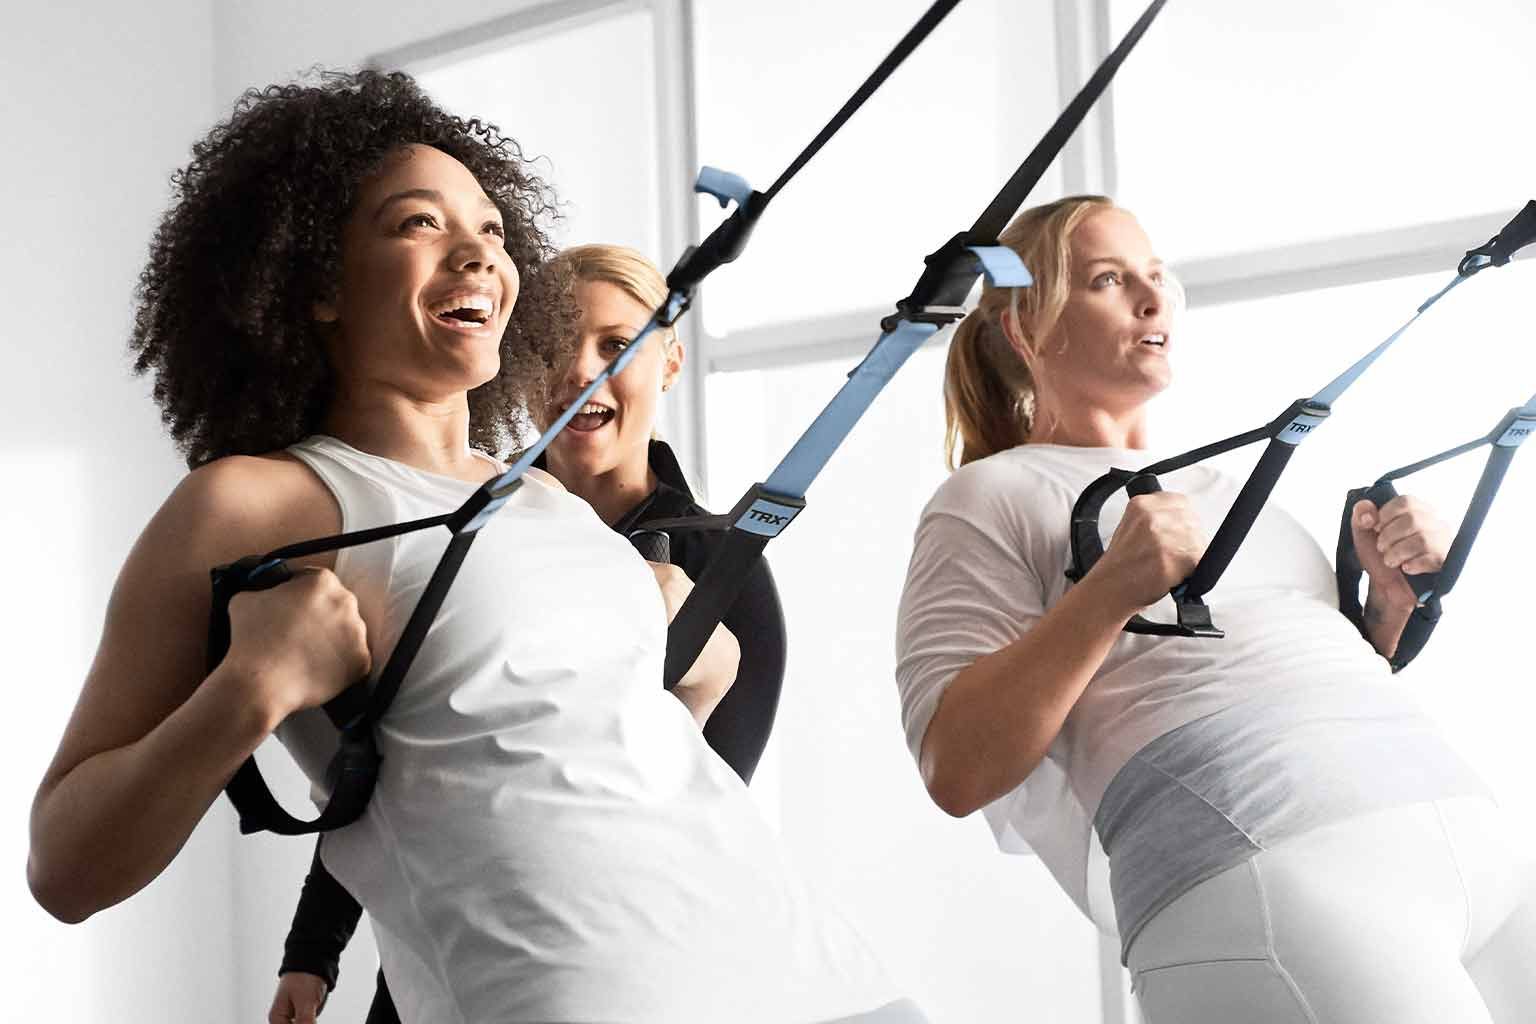 Two women in white workout clothes are cheered on by a GTX Burn coach as they do inverted ring rows